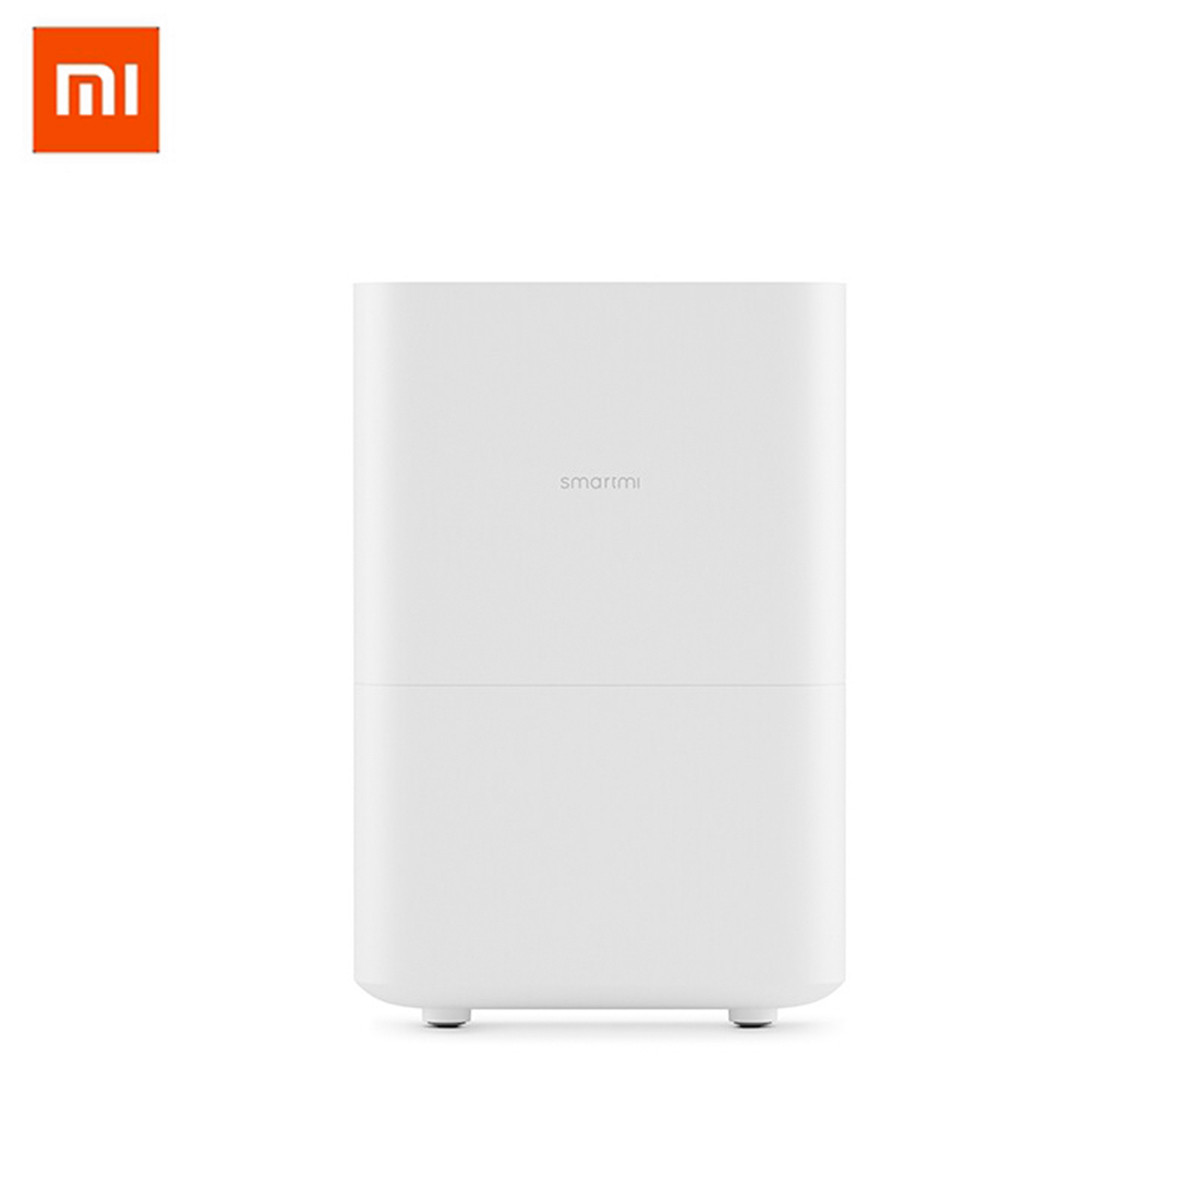 все цены на Xiaomi Mijia Original Smartmi Natural Evaporative Pure Humidifier Air dampener Aroma diffuser 4L Water Tank APP Remote Control онлайн